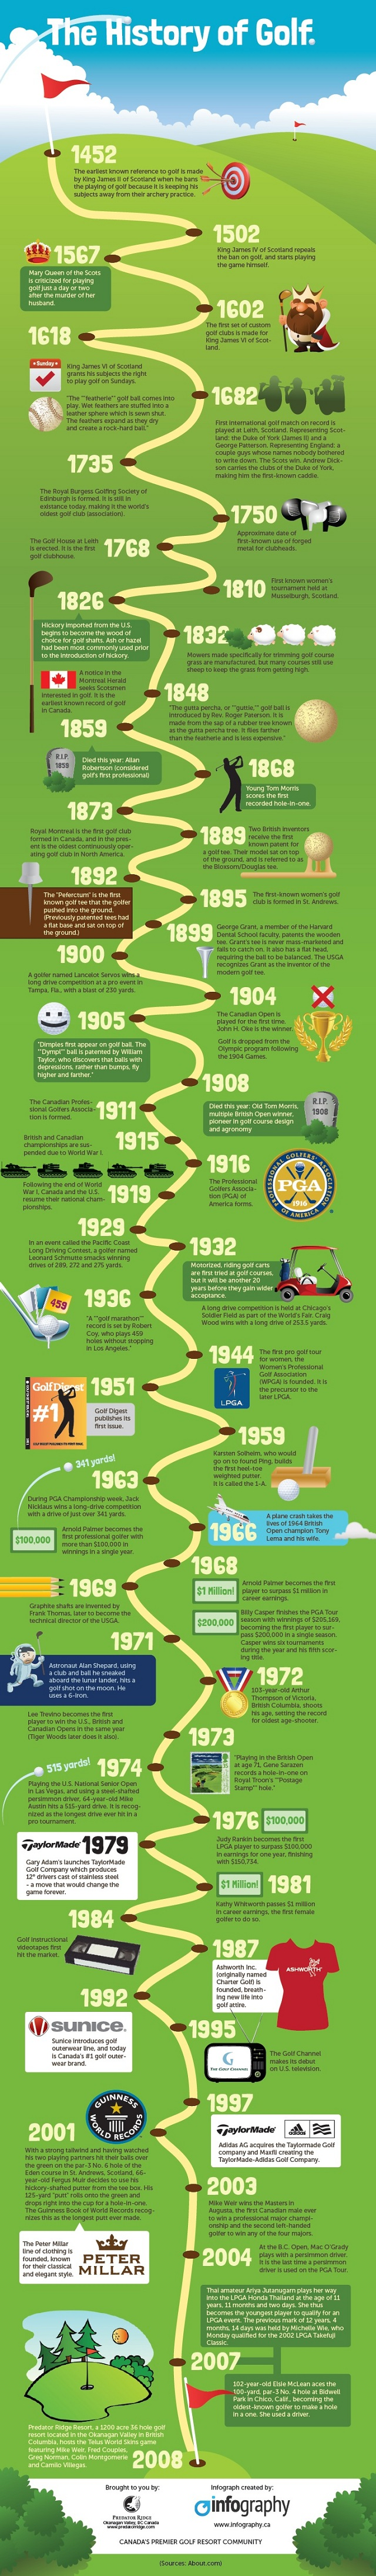 history of golf The origins, history and growth of the game of golf including important milestones, growth and changes to the game.